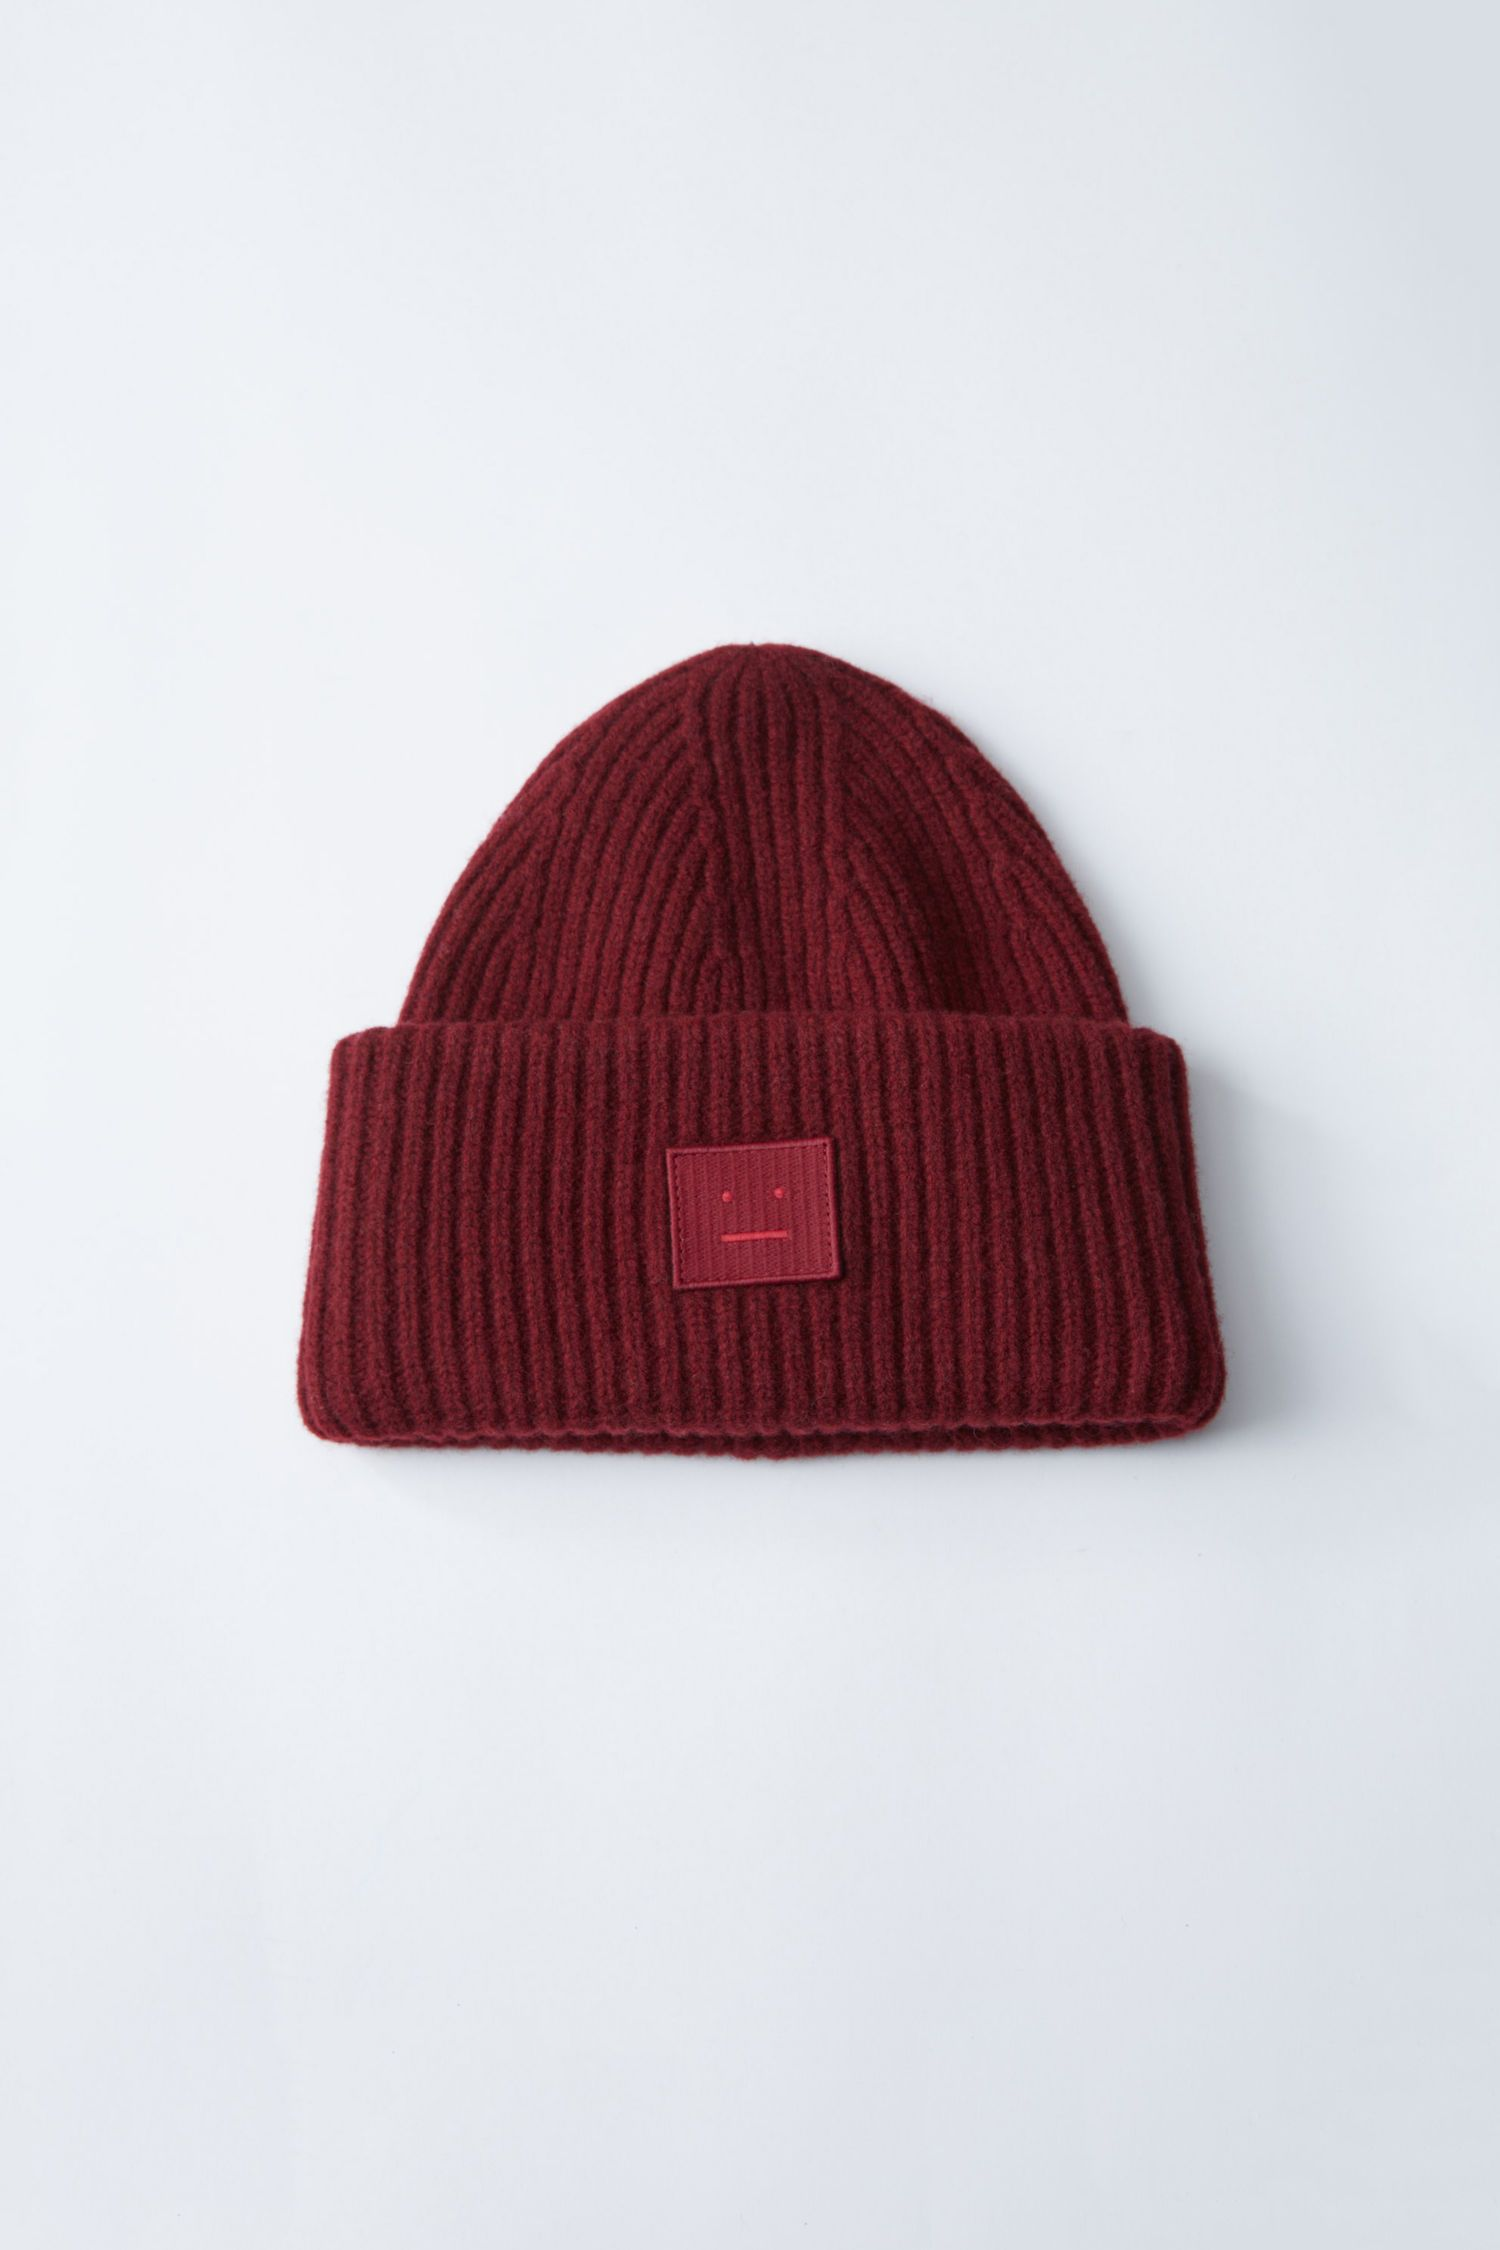 66a6b4ce88c Acne Studios Pansy burgundy is a street style ribbed beanie hat.  Accessories Pansy Face Burgundy 1500x 001